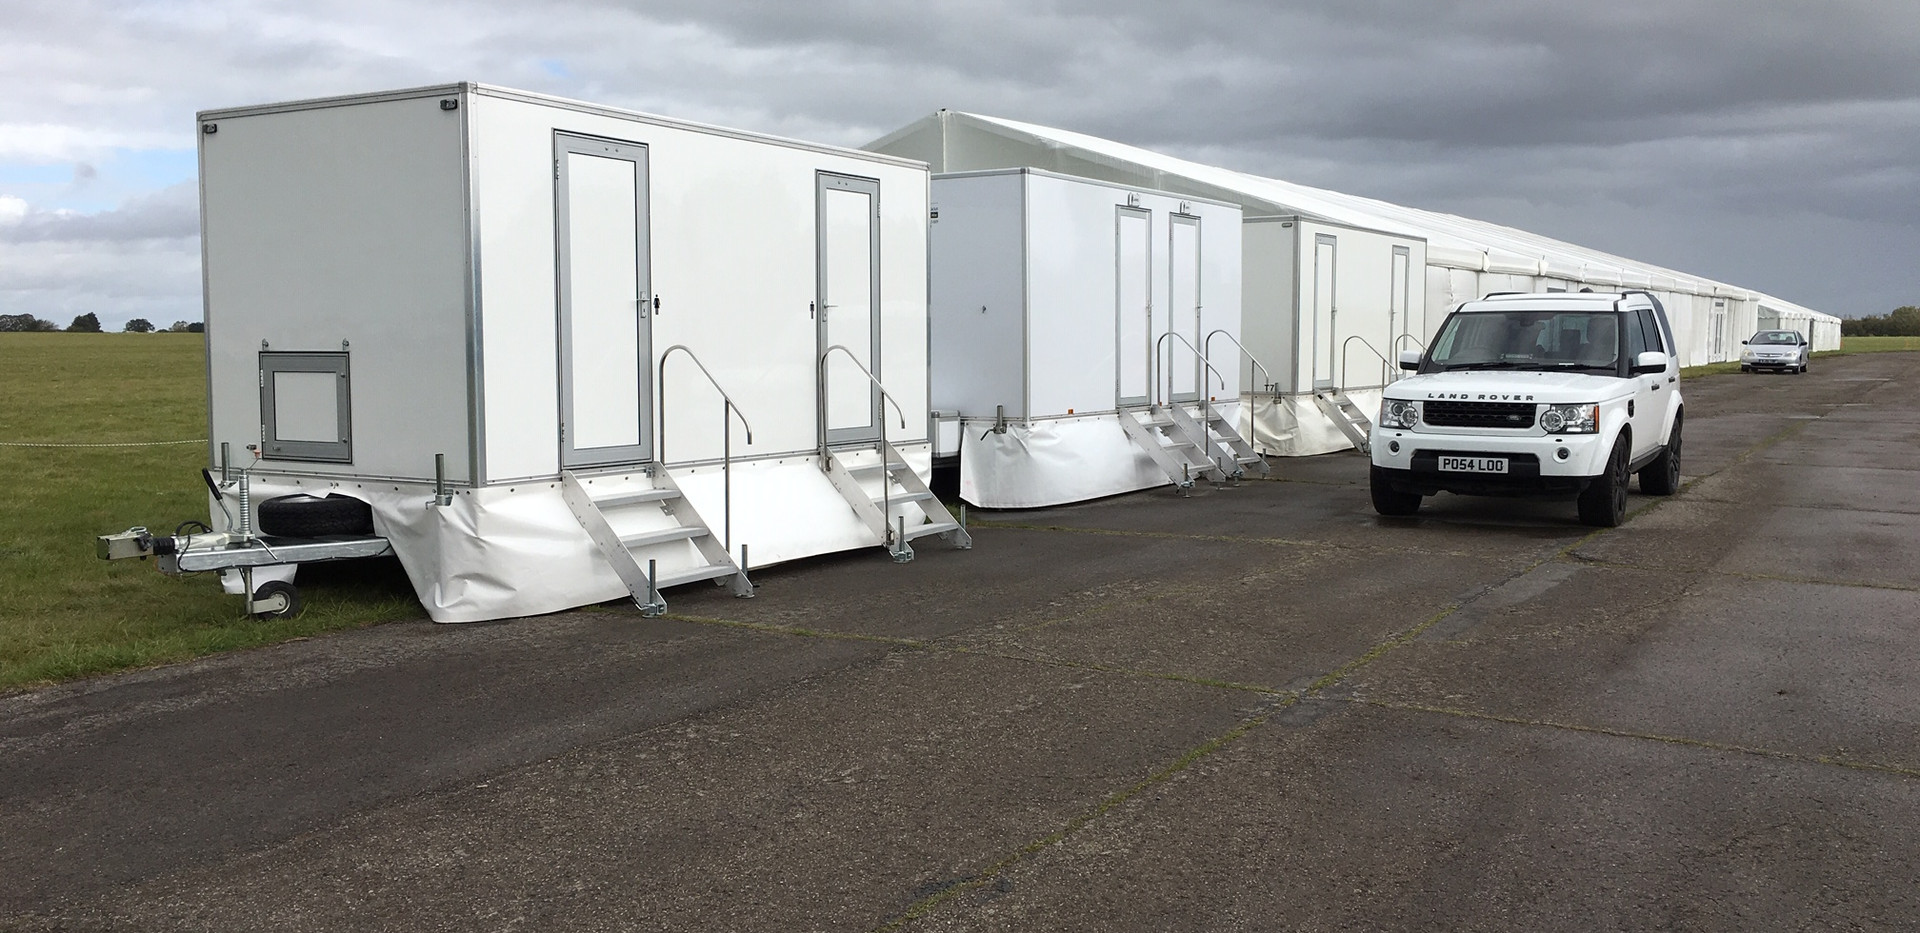 3 + 1 luxury toilet hire range